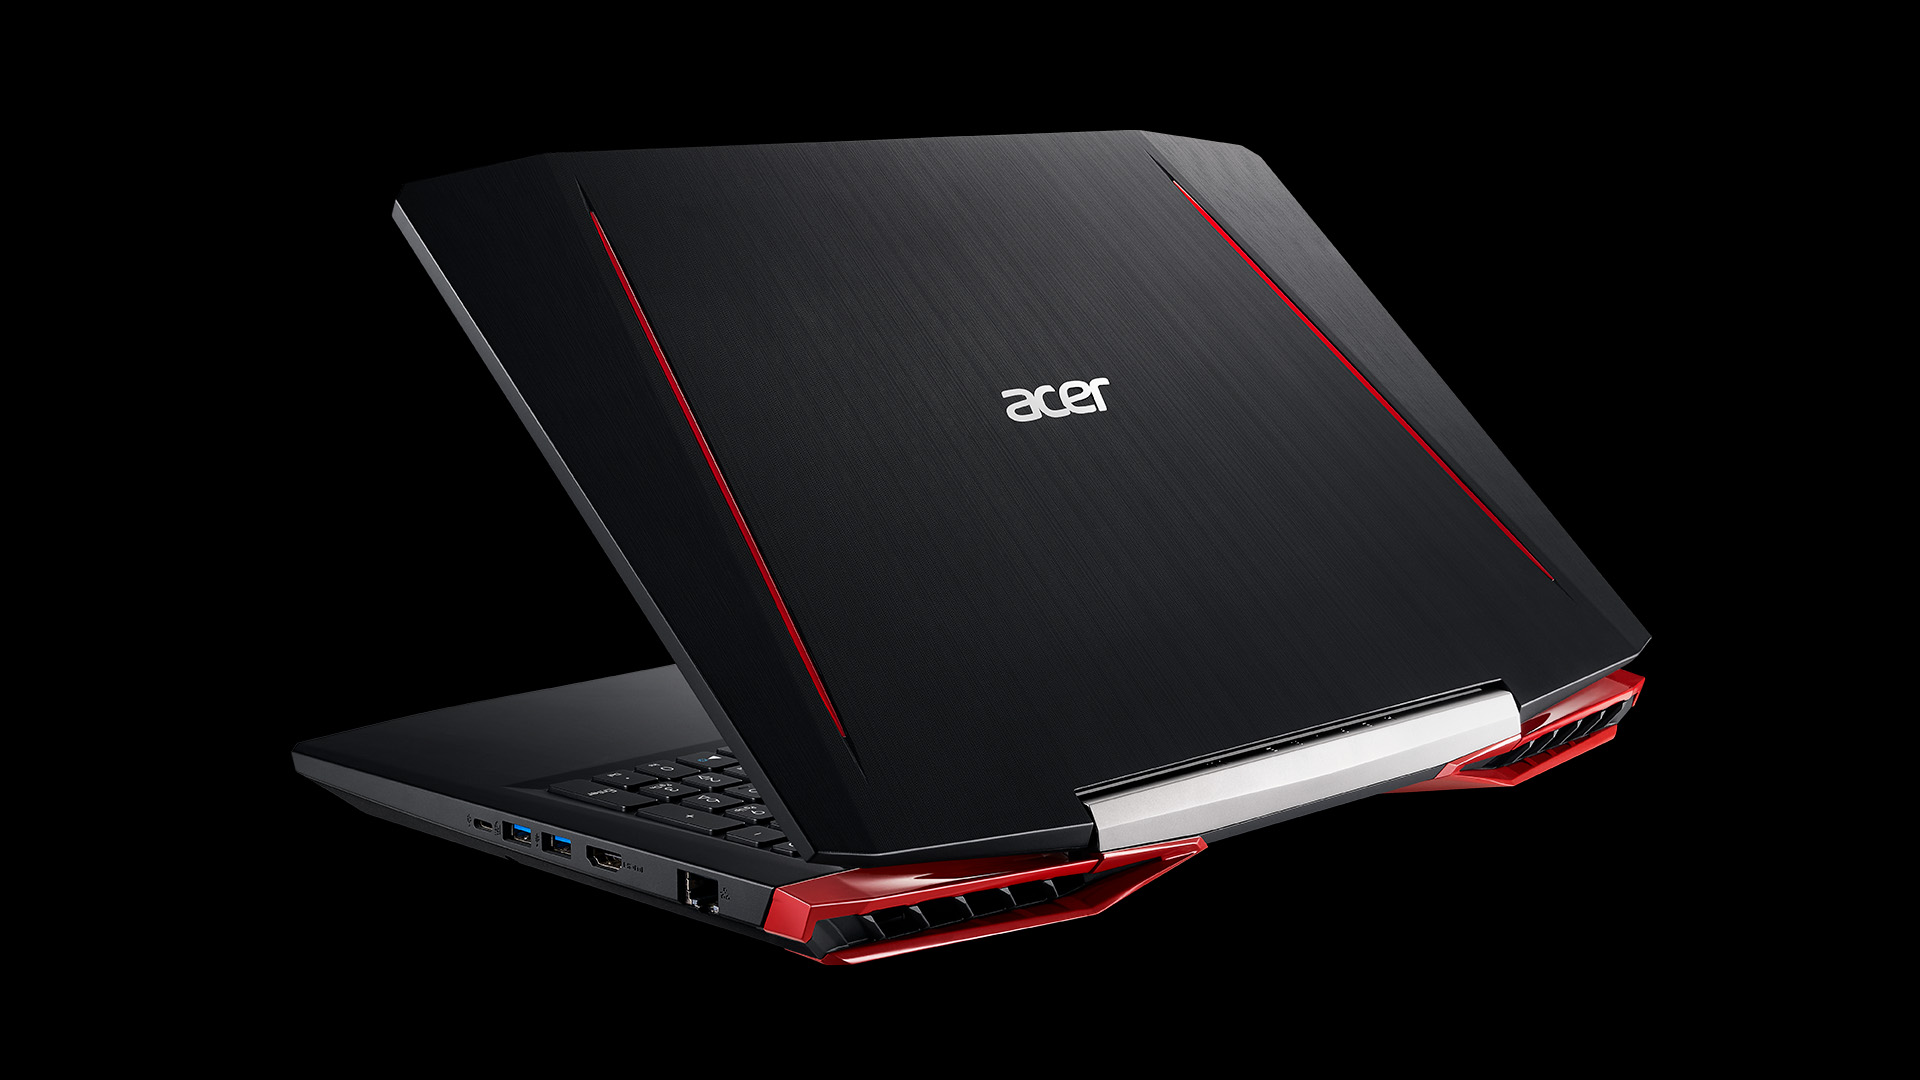 Acer Aspire VX 15 : A New Gaming Laptop